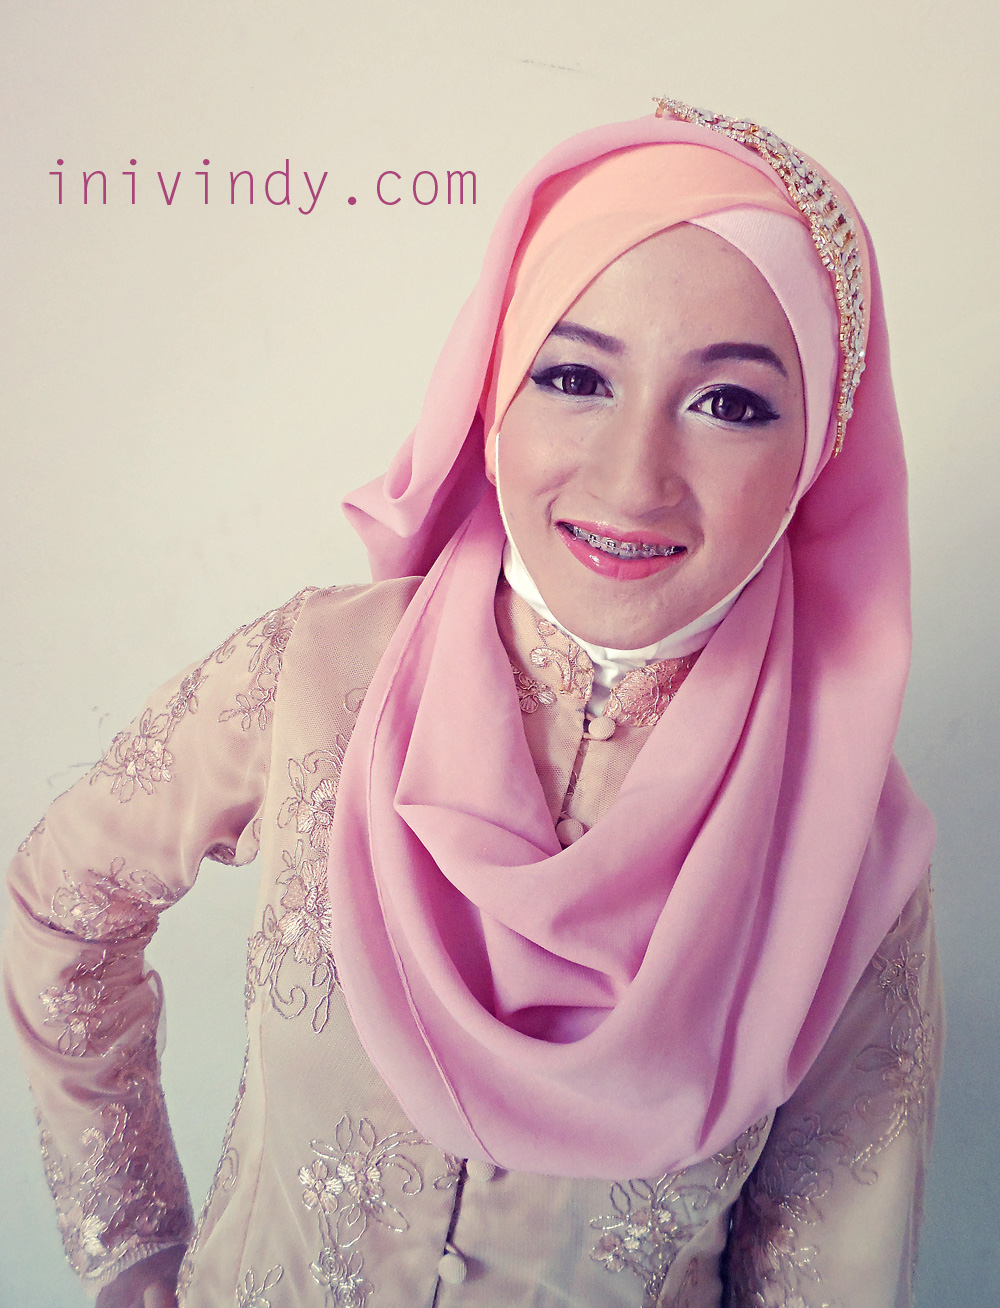 Ini Vindy Yang Ajaib Before After Engagement Makeup Untuk Wajah